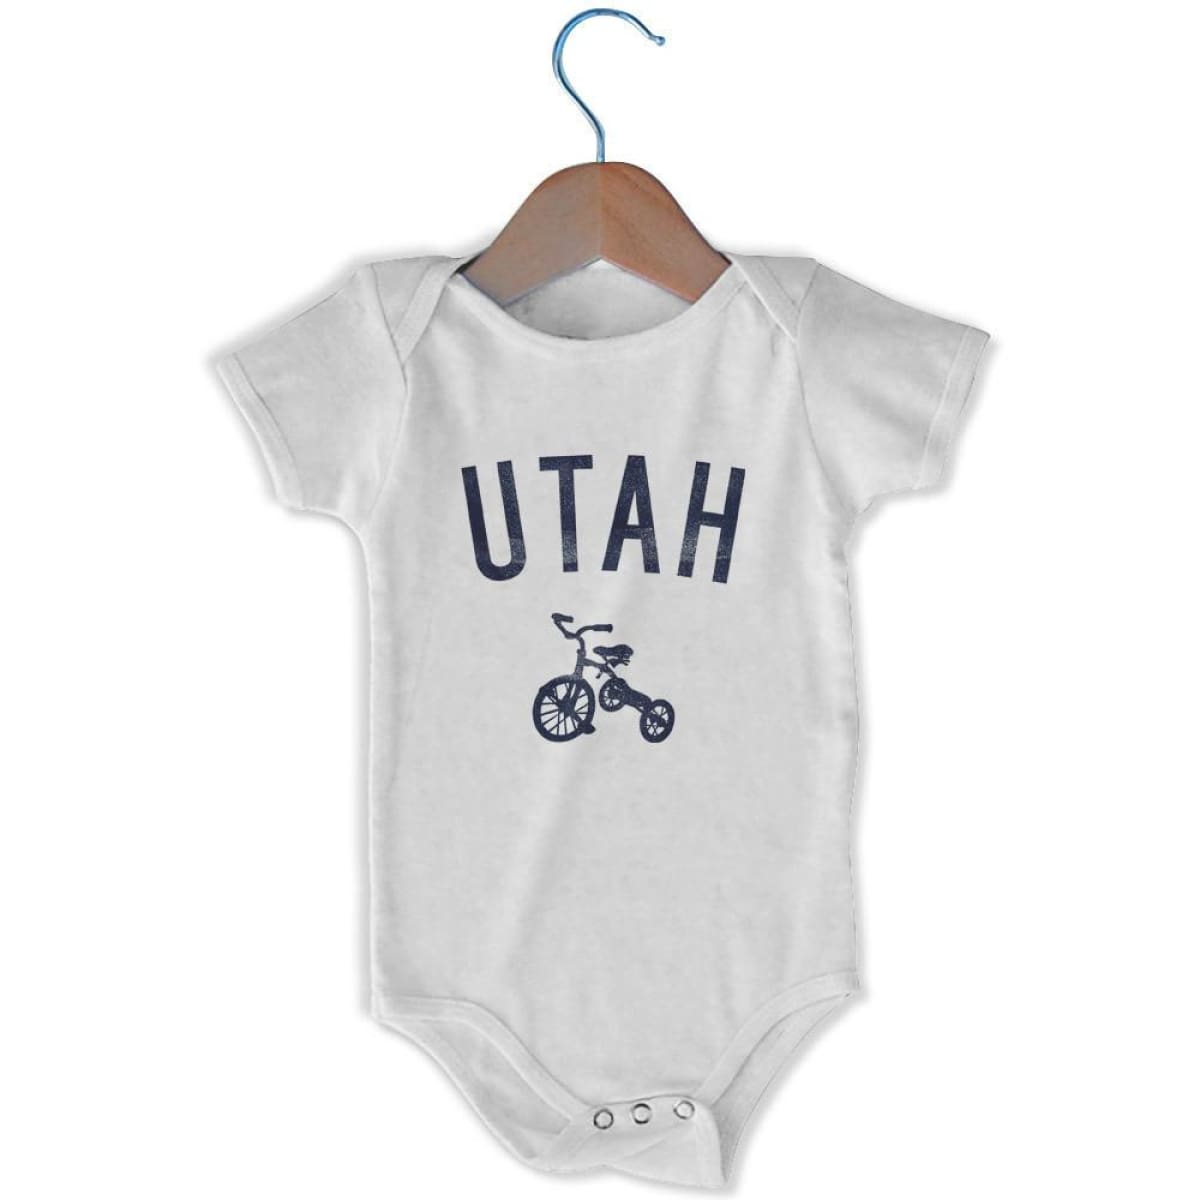 Utah City Tricycle Infant Onesie - White / 6 - 9 Months - Mile End City